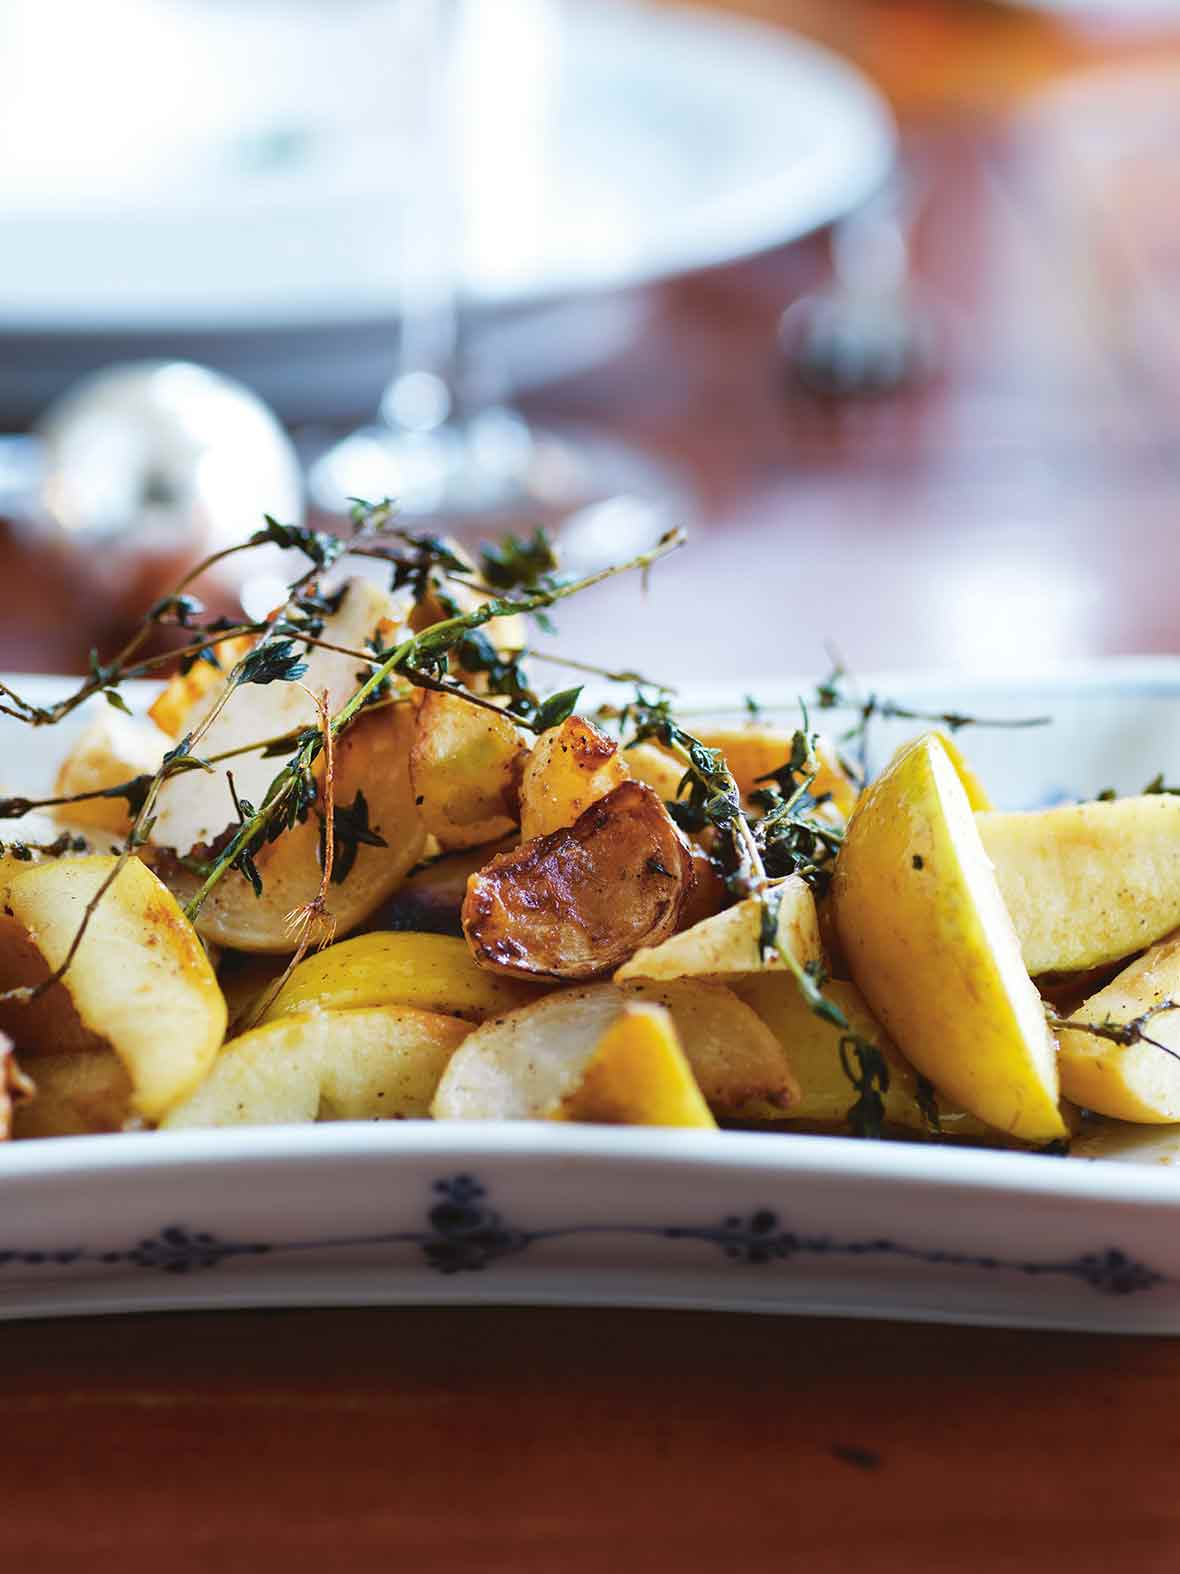 A white platter filled with turnip and apples segments, topped with thyme sprigs